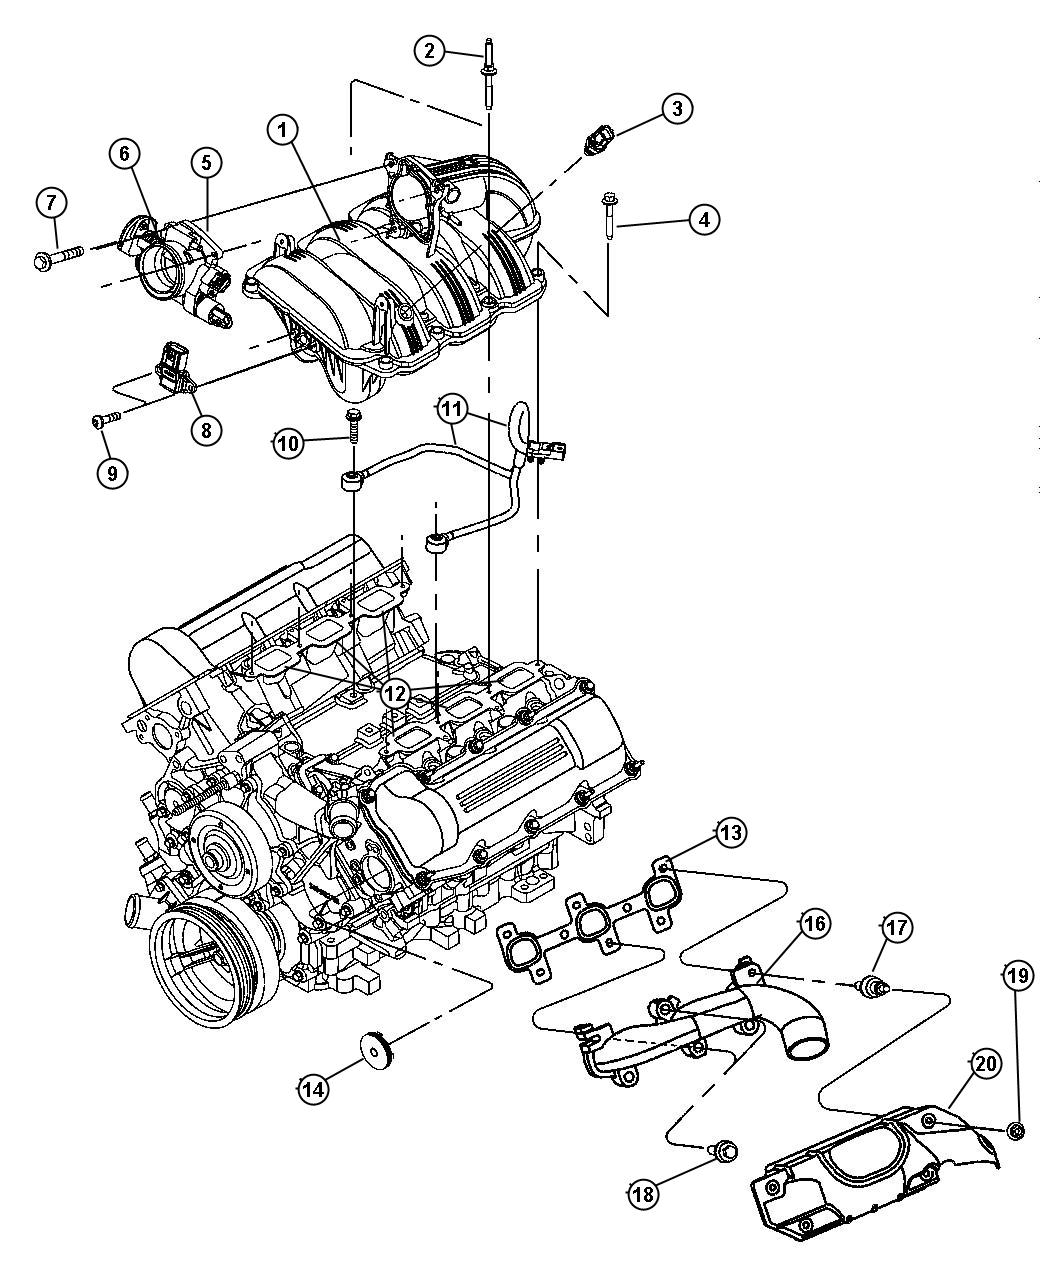 jeep liberty spark plug diagram